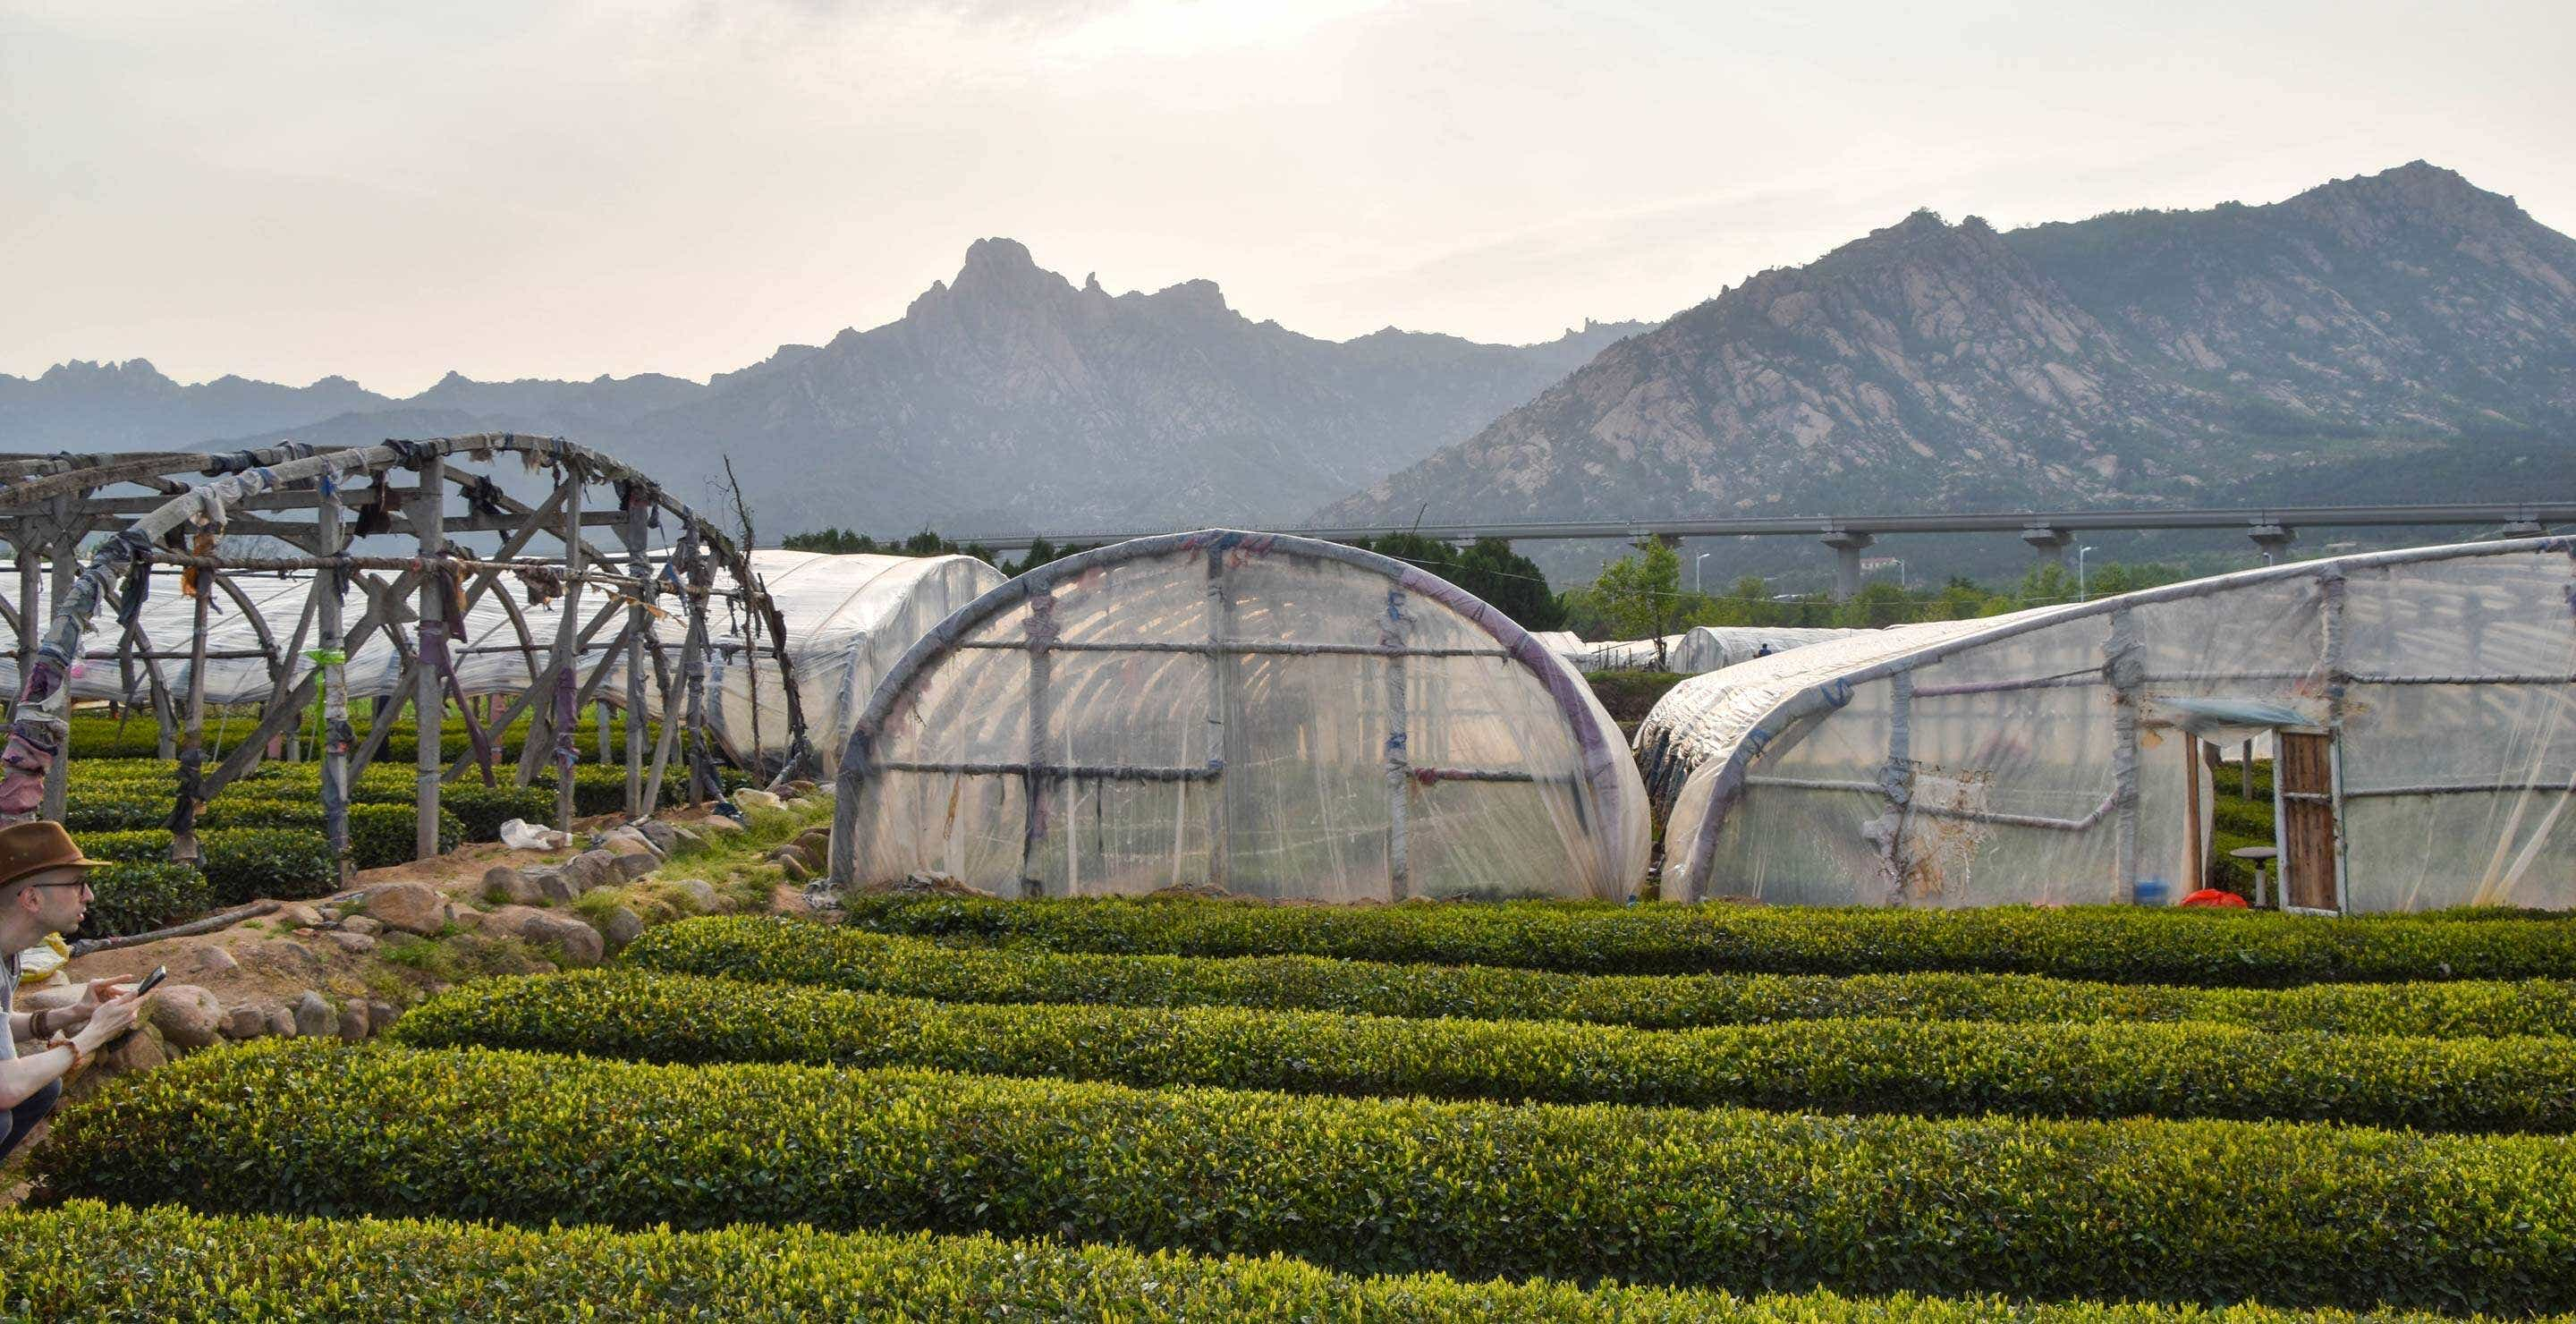 our tea fields in Laoshan // we begin to remove the greenhouse covers in May